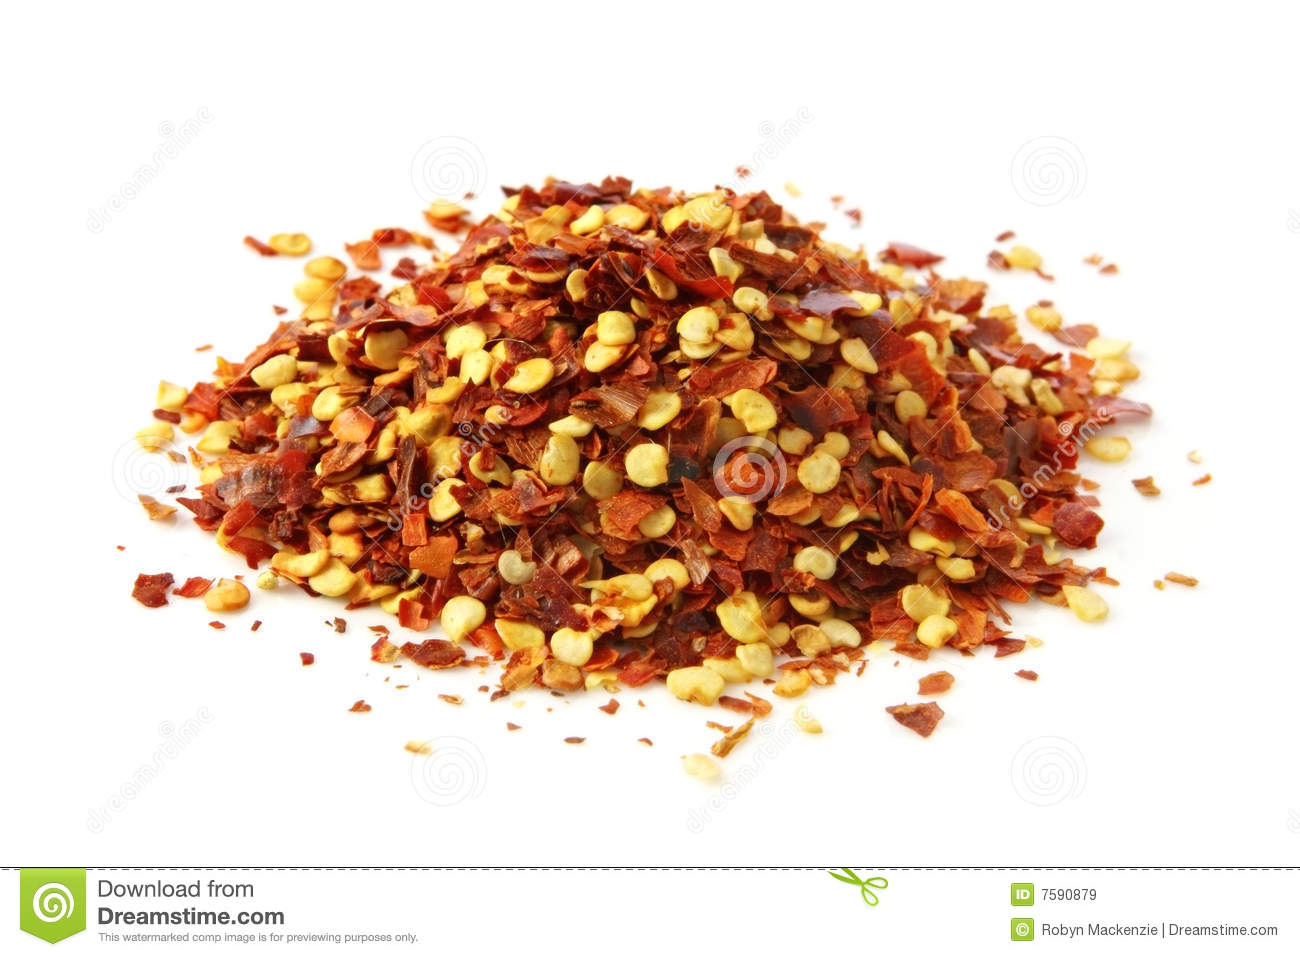 Chili flakes royalty free stock images image 7590879 for Chili flakes